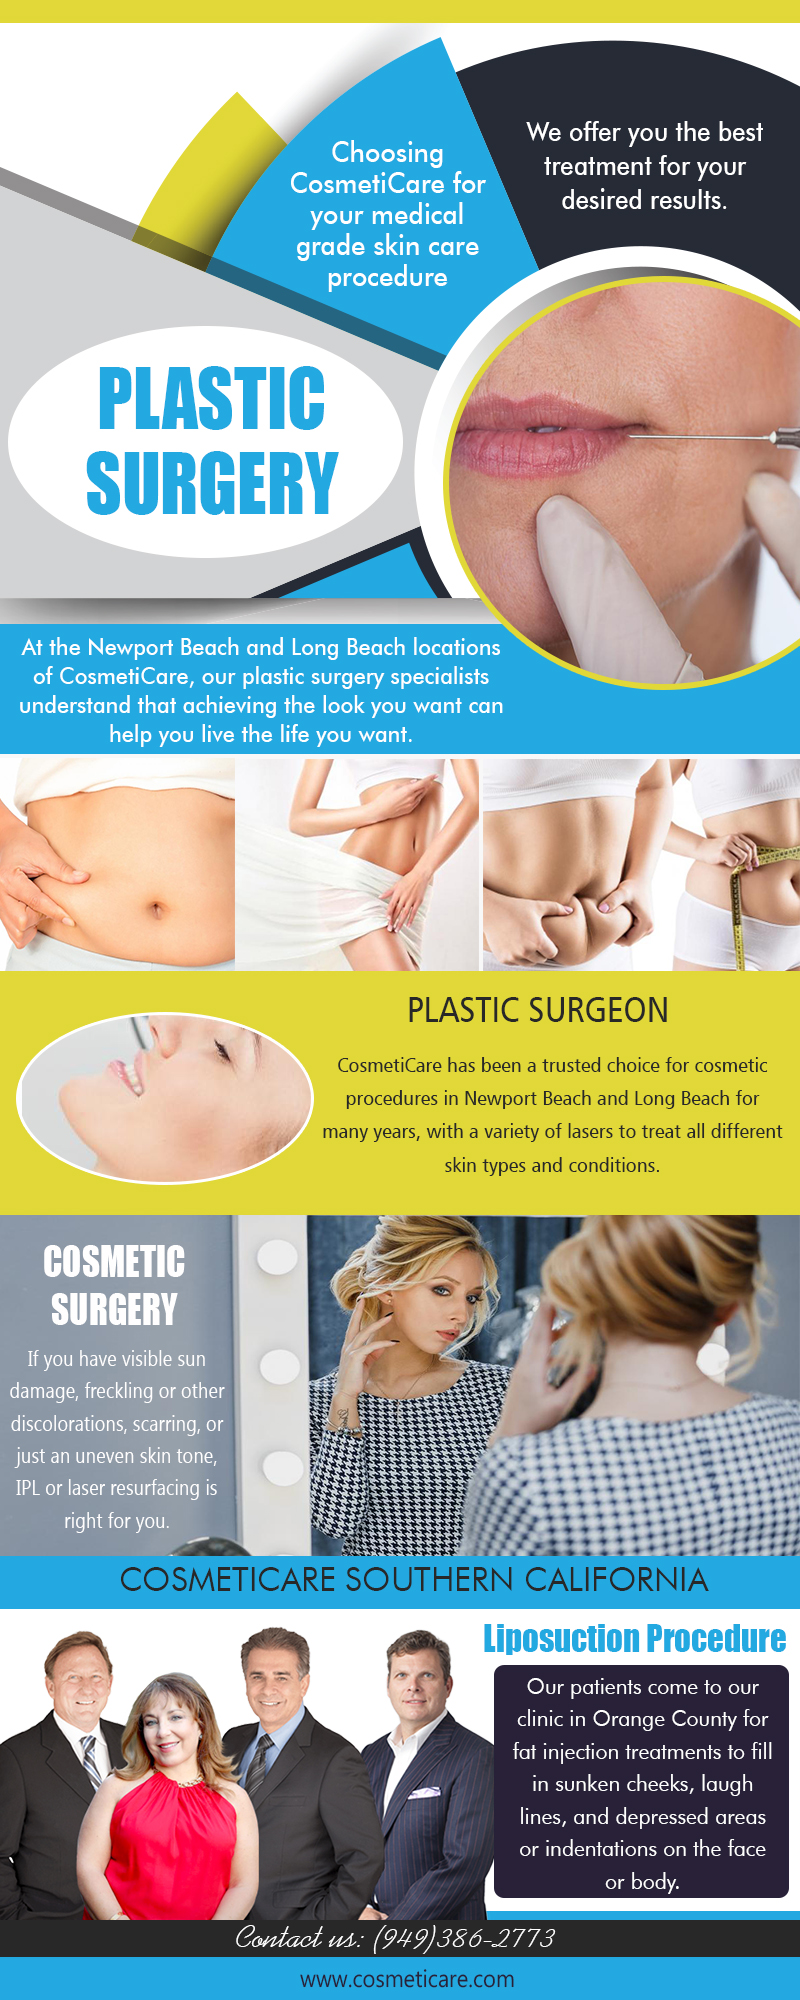 Breast surgery to enhance the appearance, size and contour